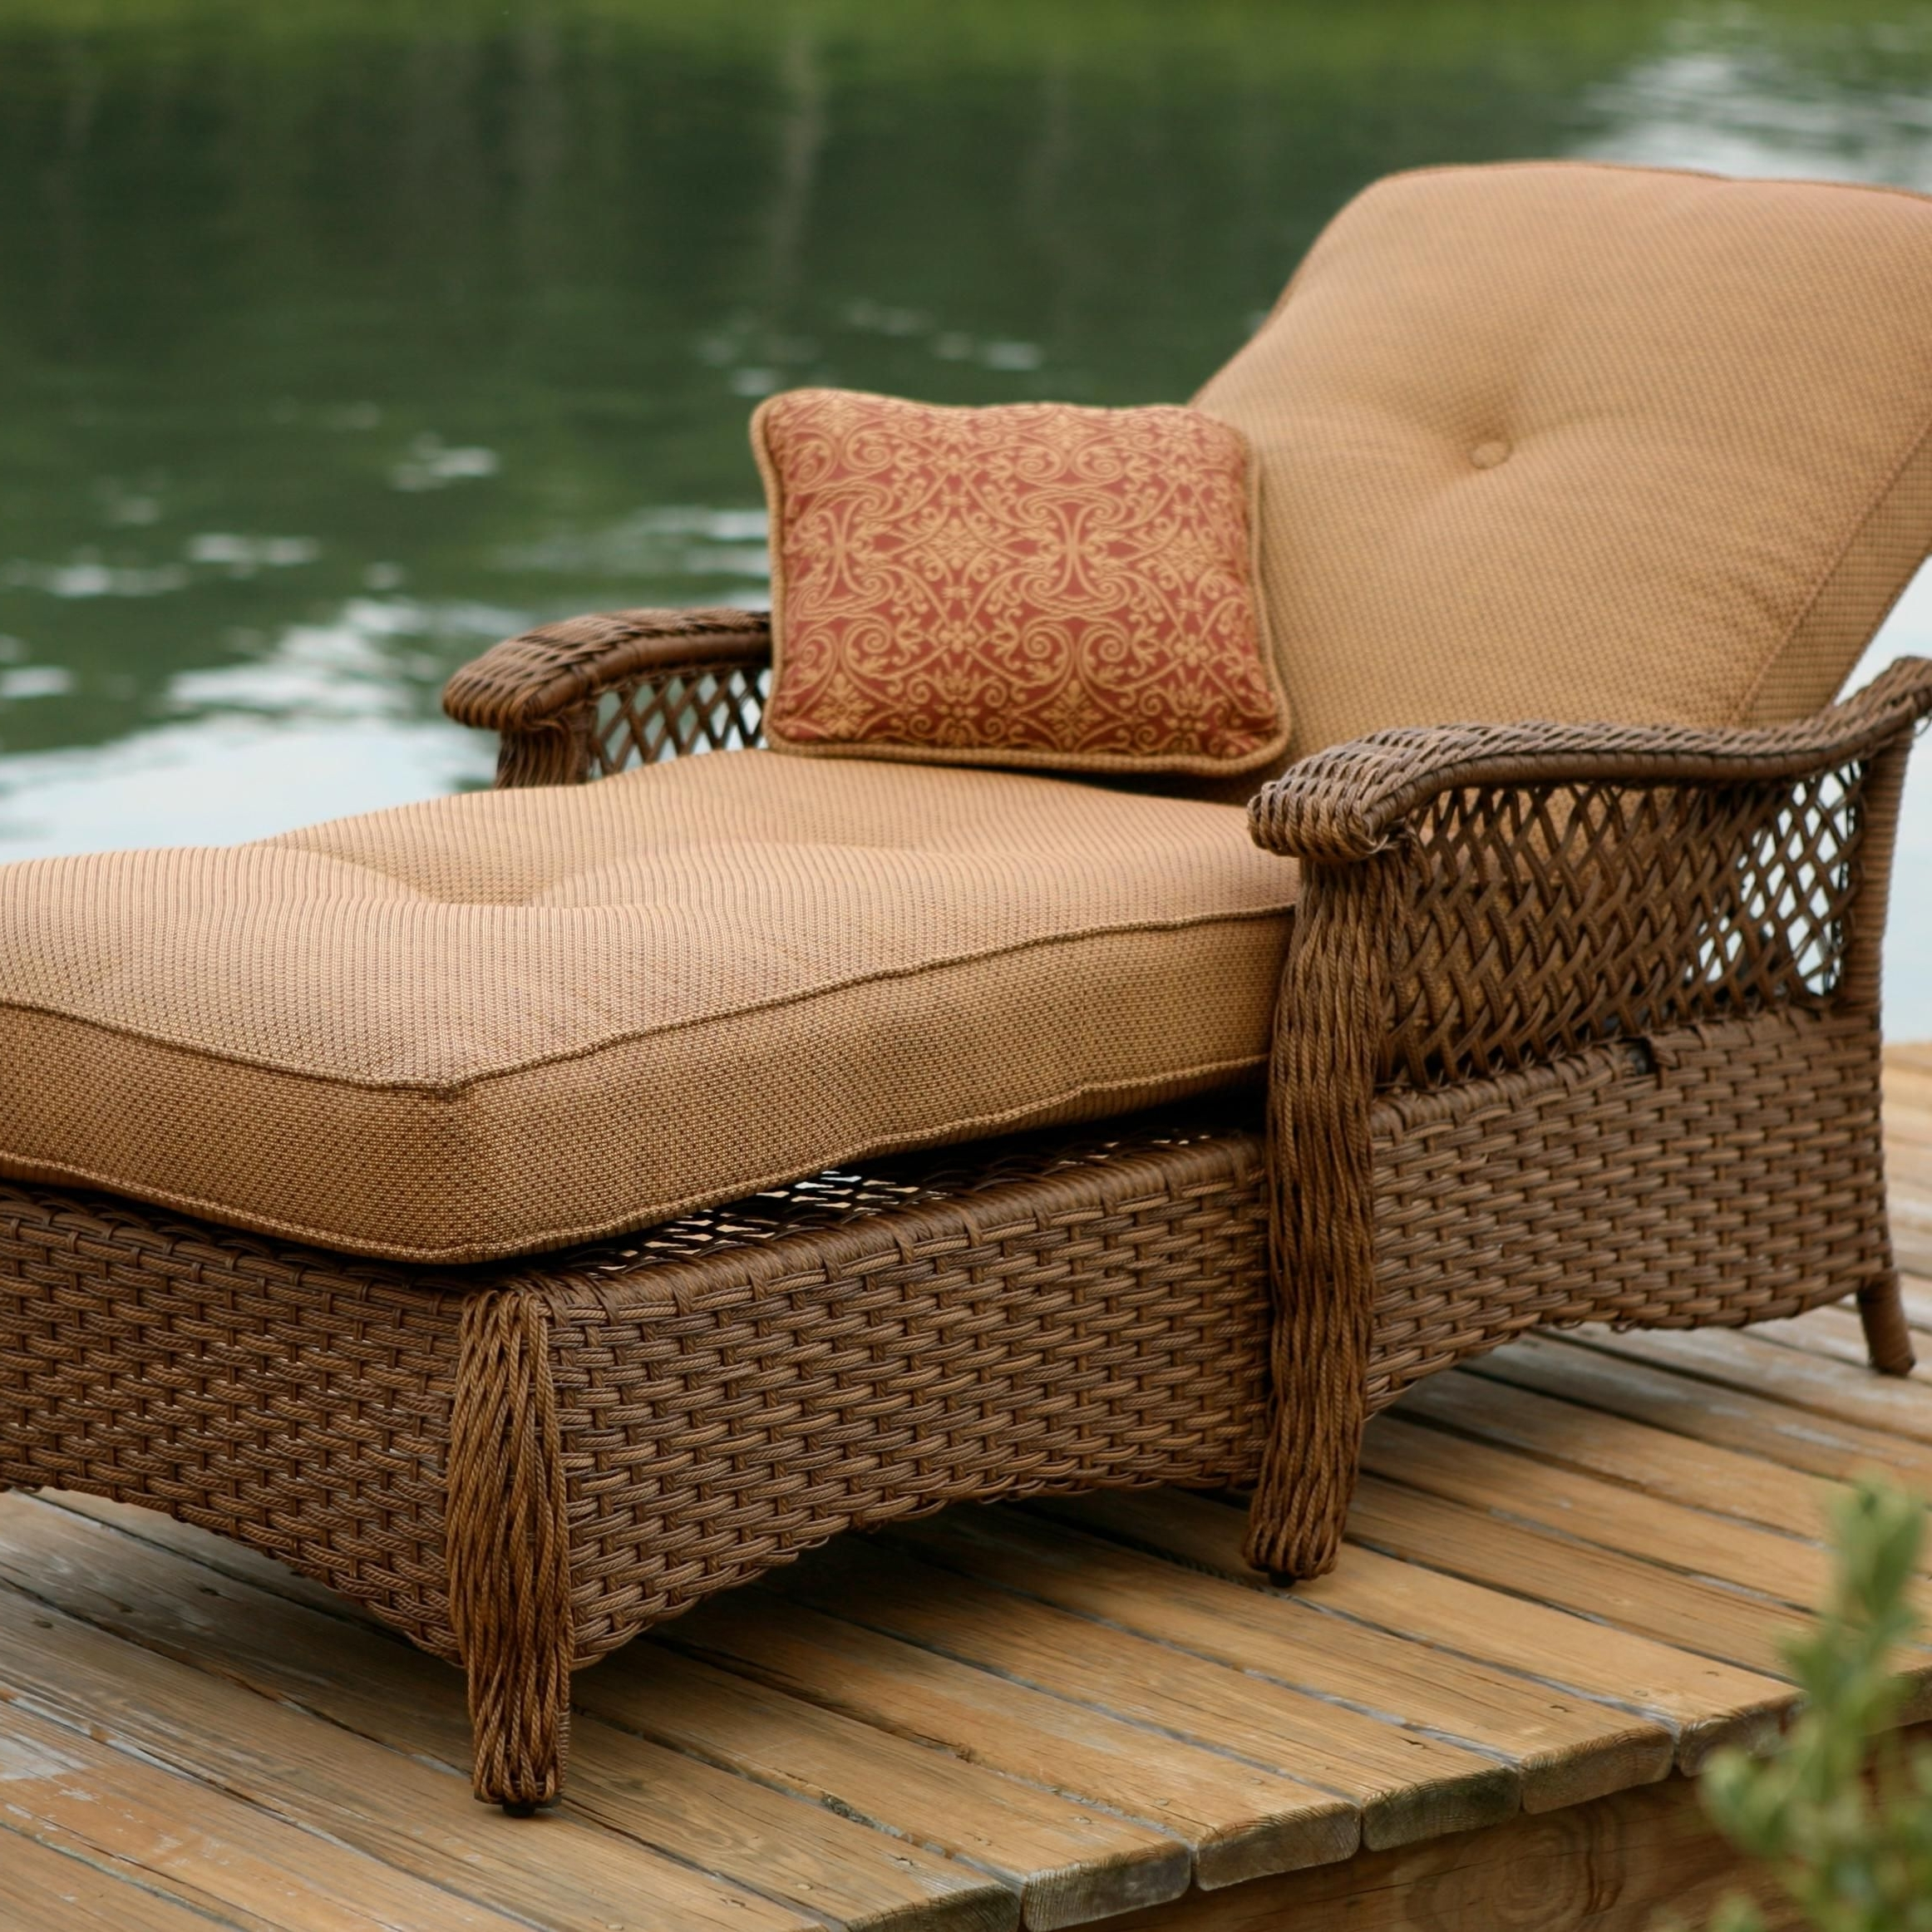 Outdoor Wicker Chaise Lounges Throughout Preferred Veranda–Agio Outdoor Woven Chaise Loungeagio (View 11 of 15)